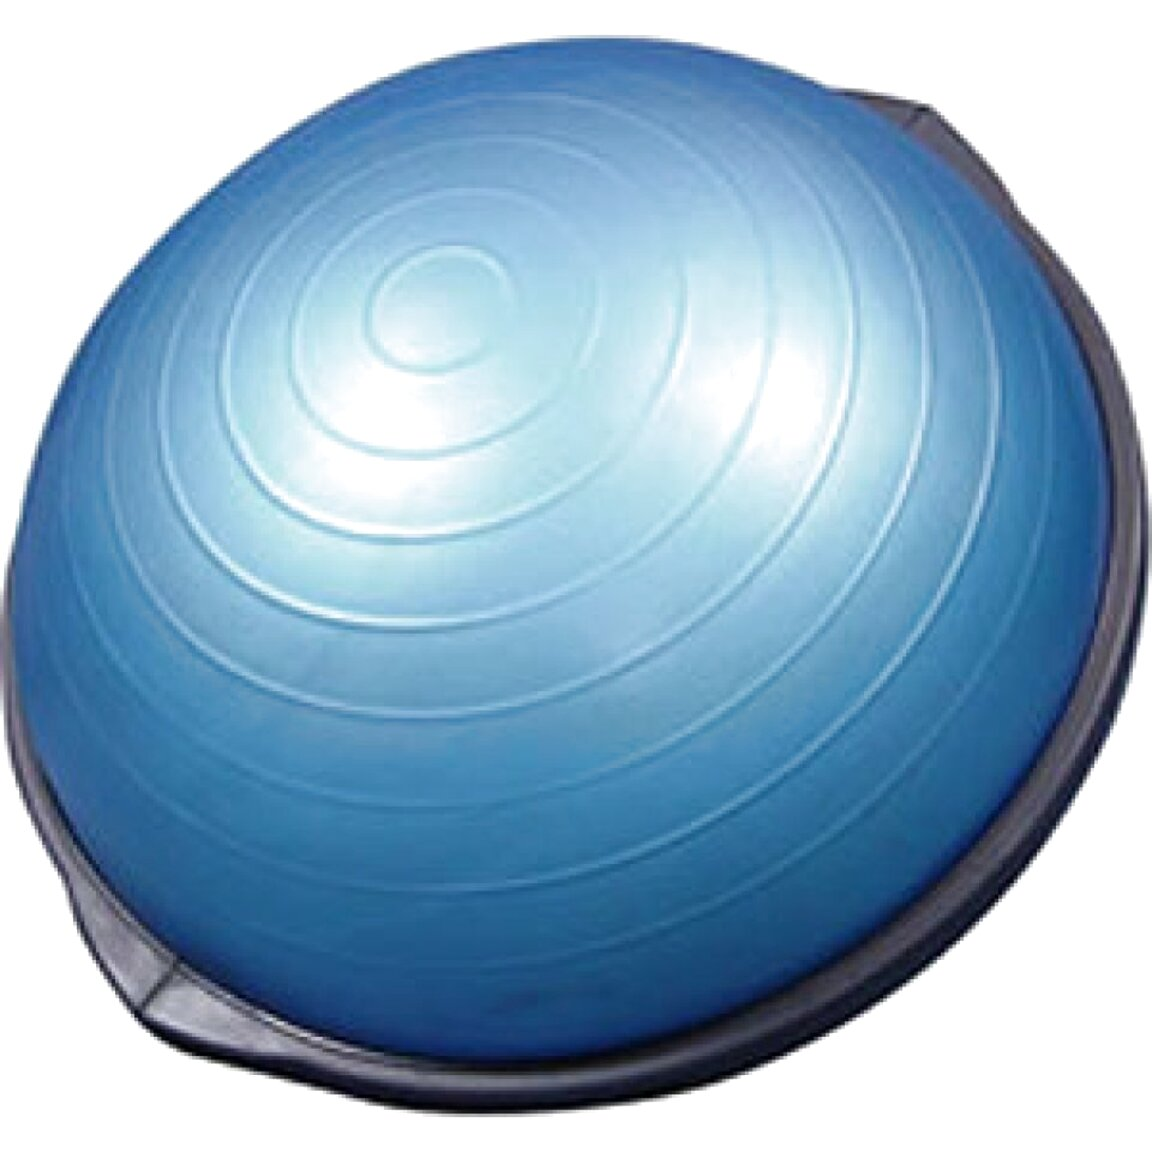 bosu ball for sale